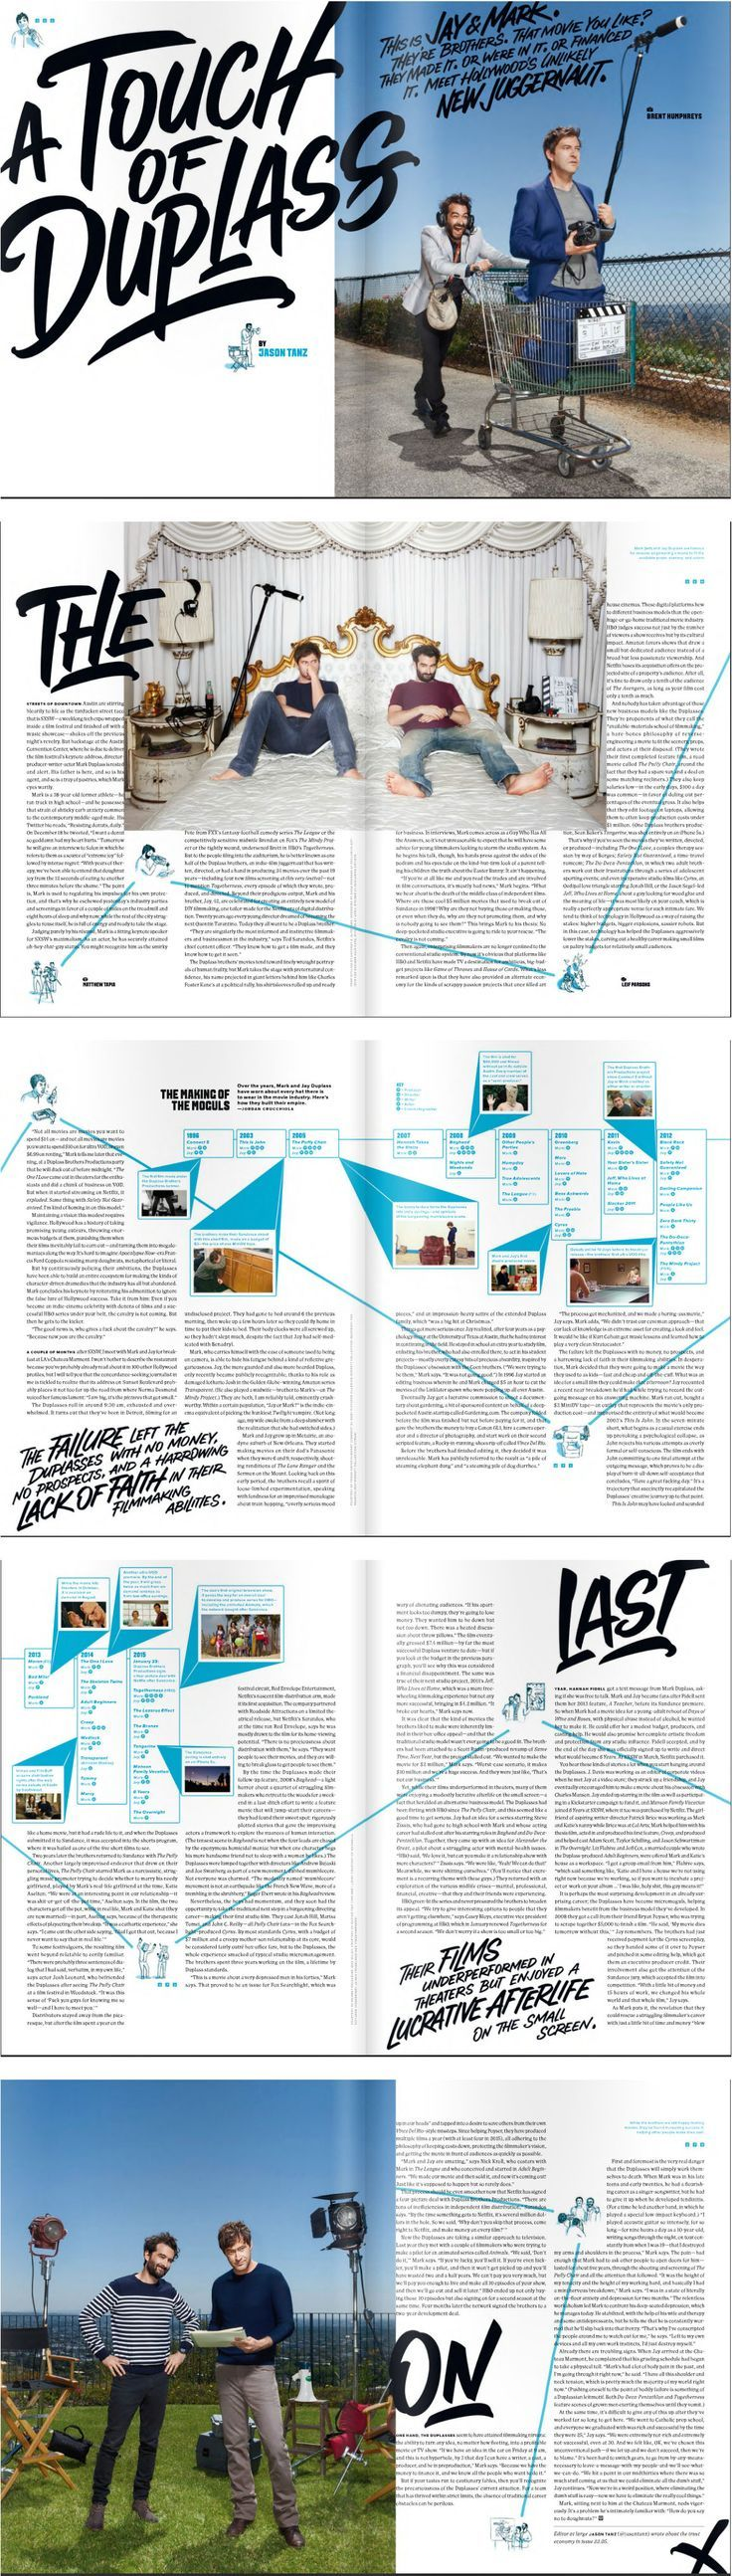 Wired USA   Inspiring to see the full piece laid out: